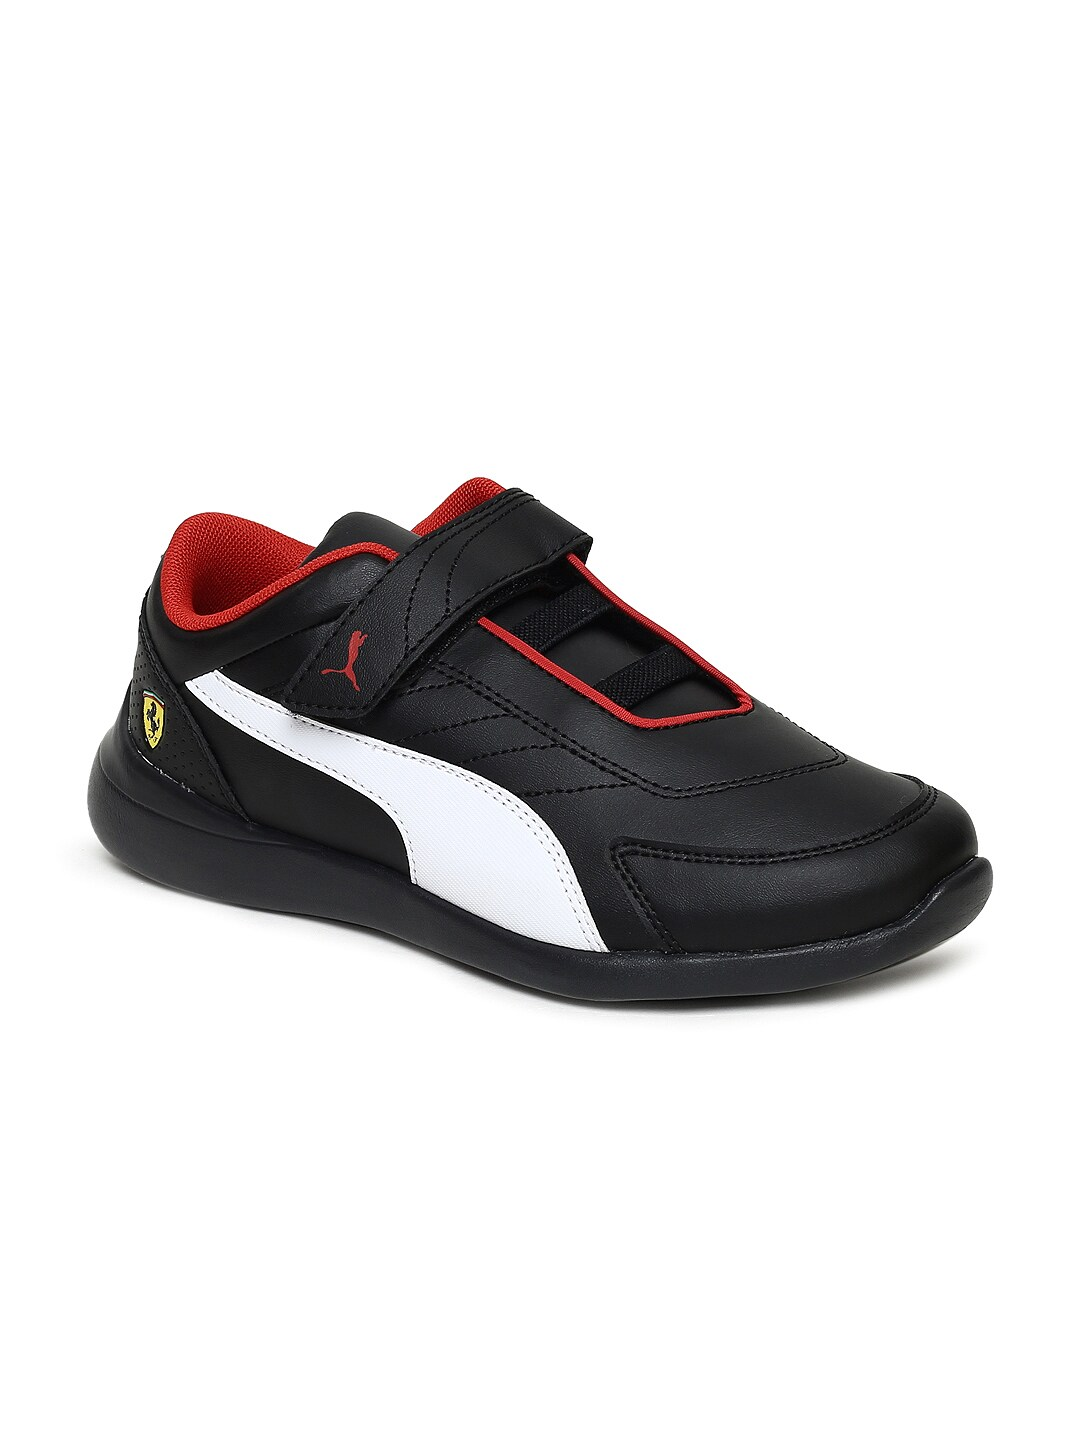 779a522a06ef Girls Puma Casual Shoes - Buy Girls Puma Casual Shoes online in India